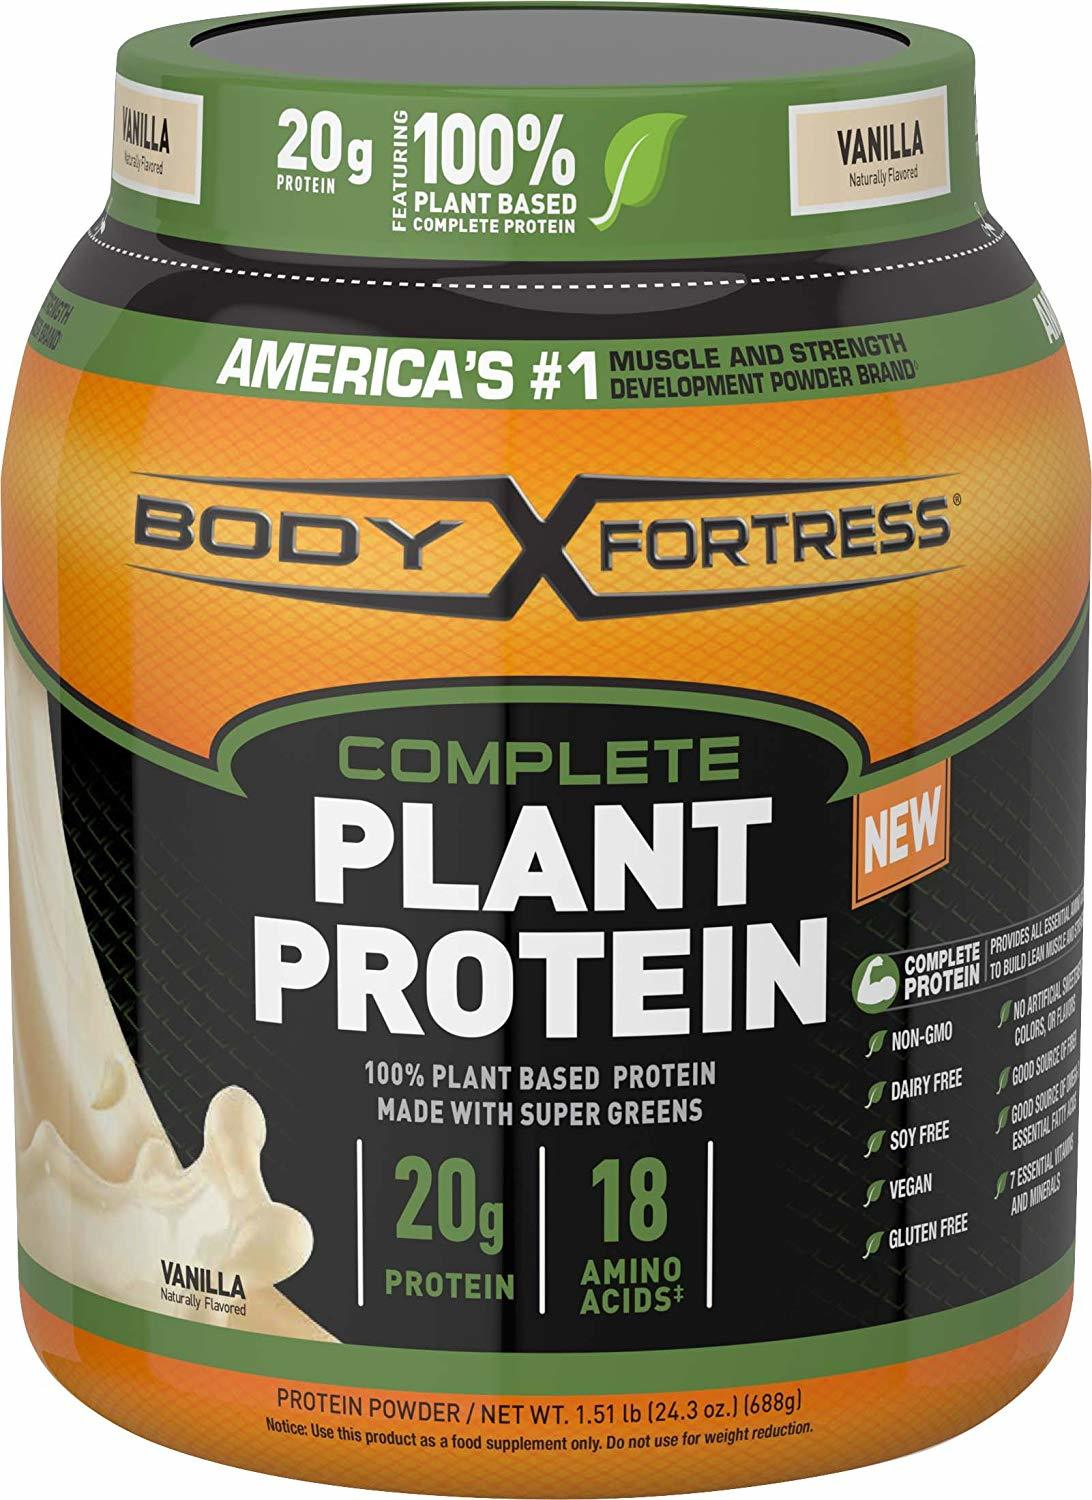 Protein Fortress Powder Body Review